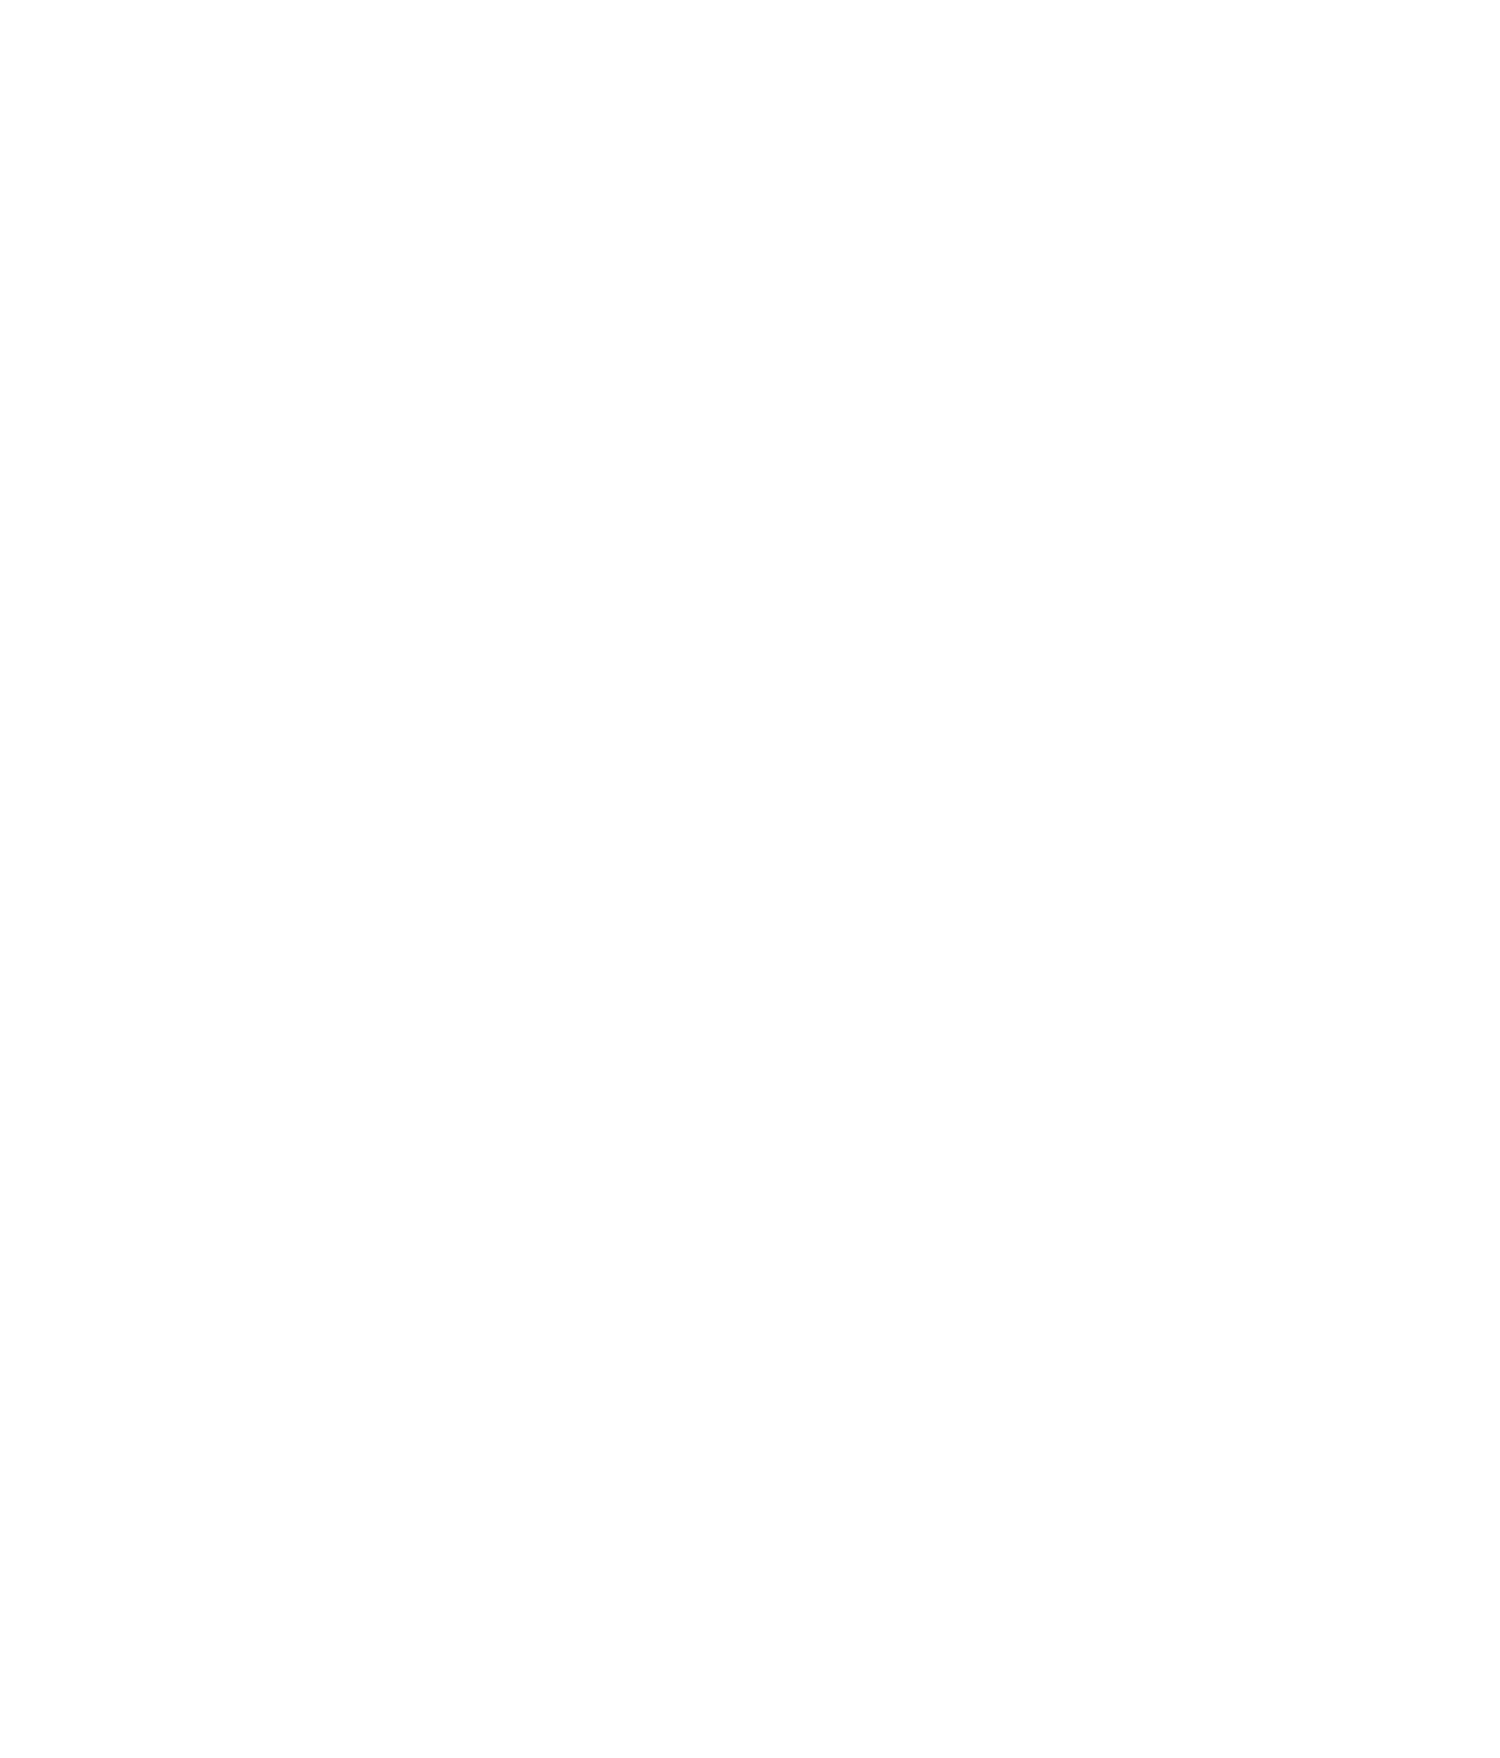 KC Sportfishing Charter - Mexico Beach, FL